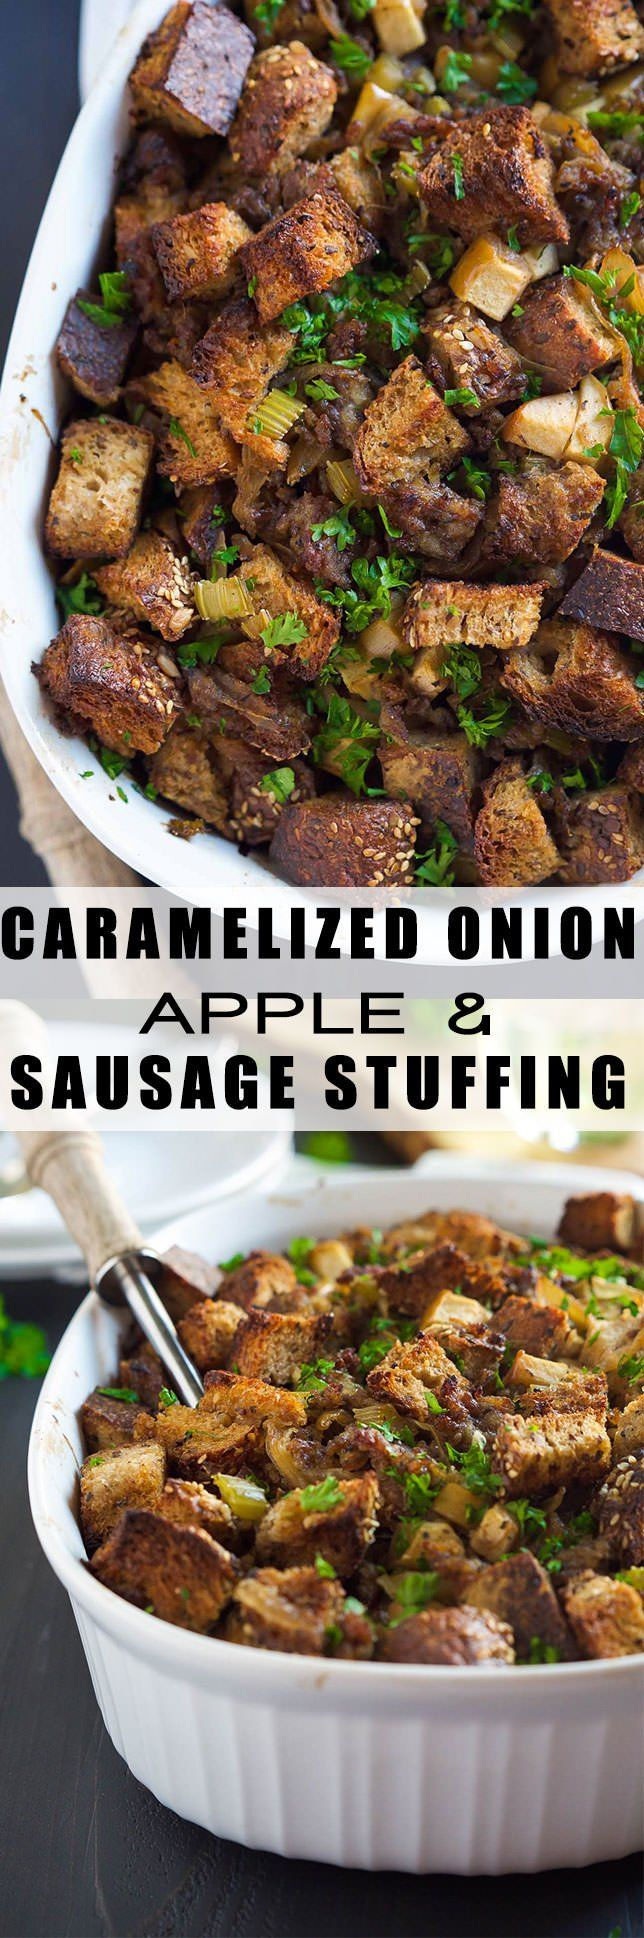 Stuffing, Grains and Sausages on Pinterest